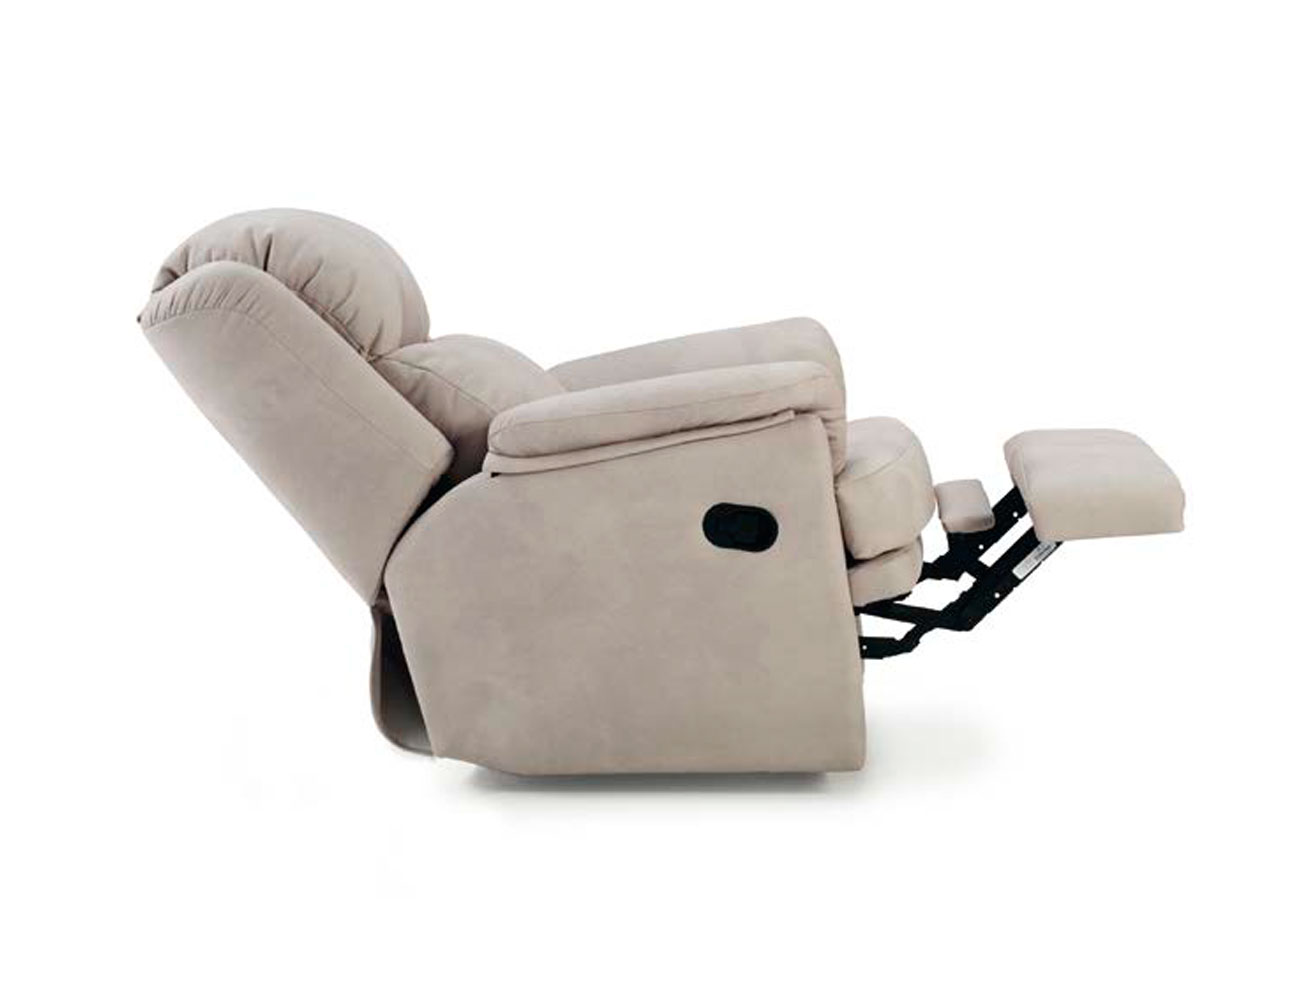 Sillon relax manual palanca esther 127